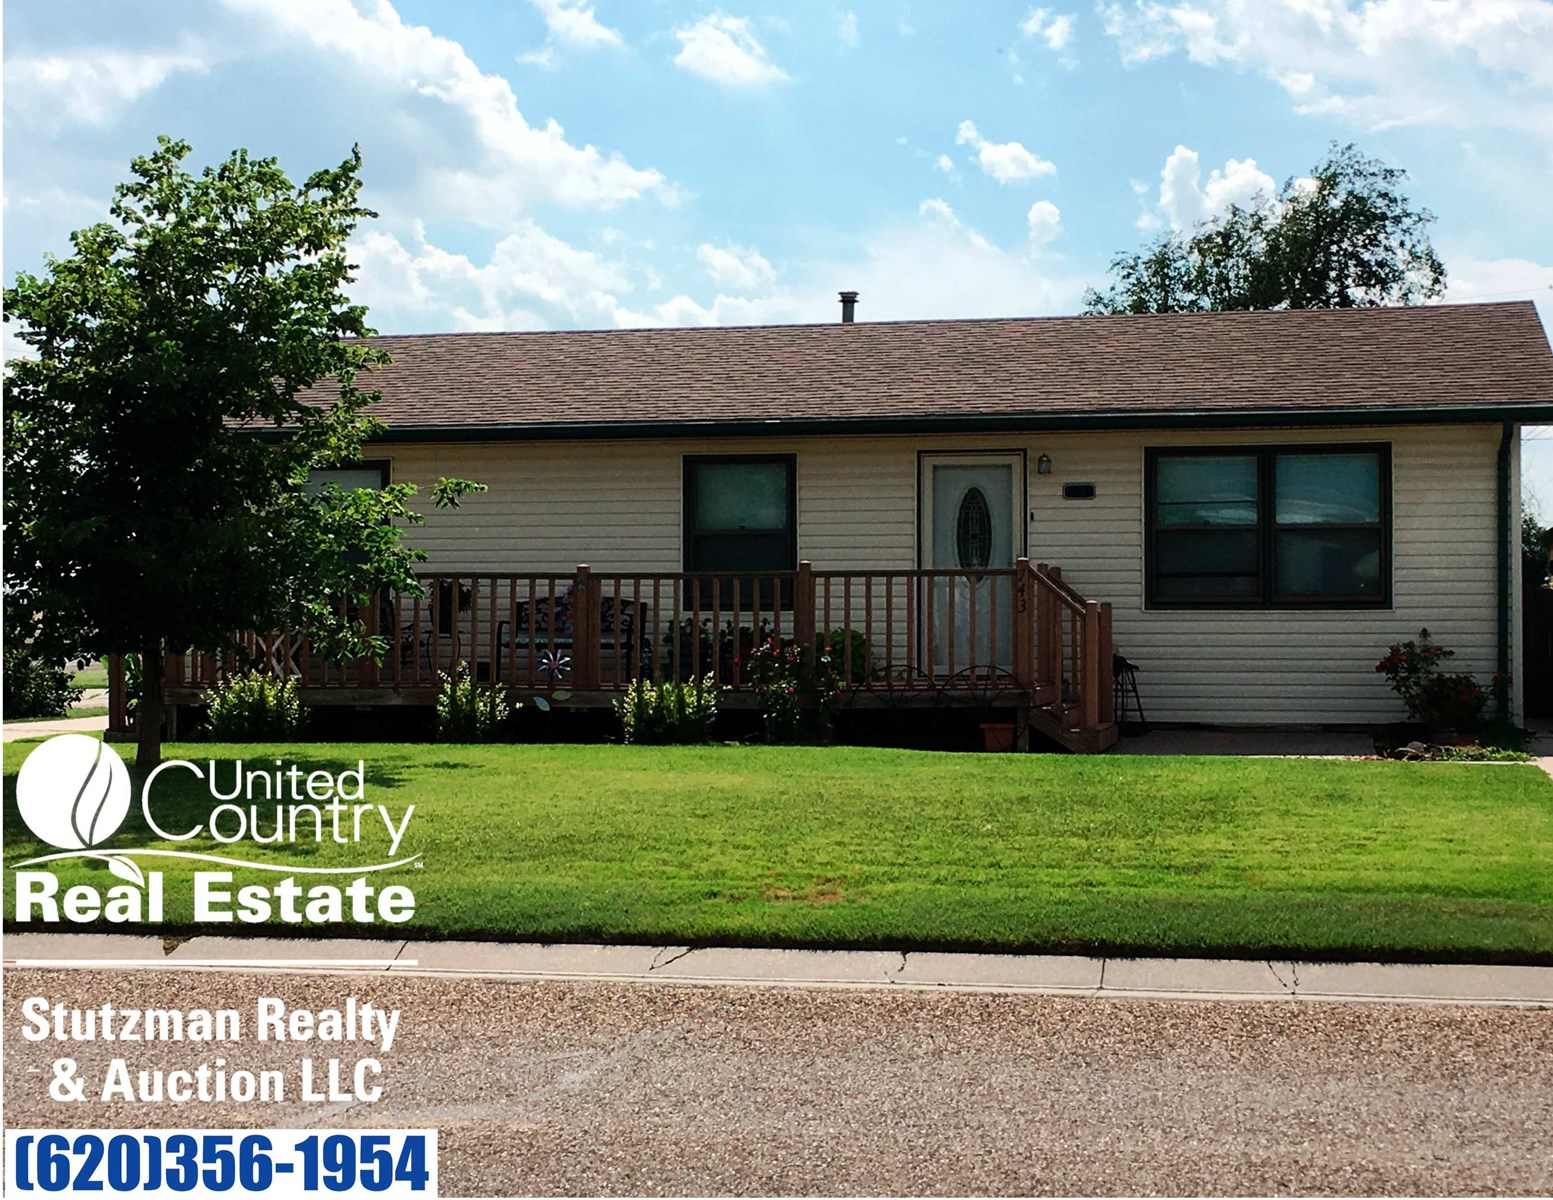 LARGE AND AFFORDABLE HOME FOR SALE IN ULYSSES, KS